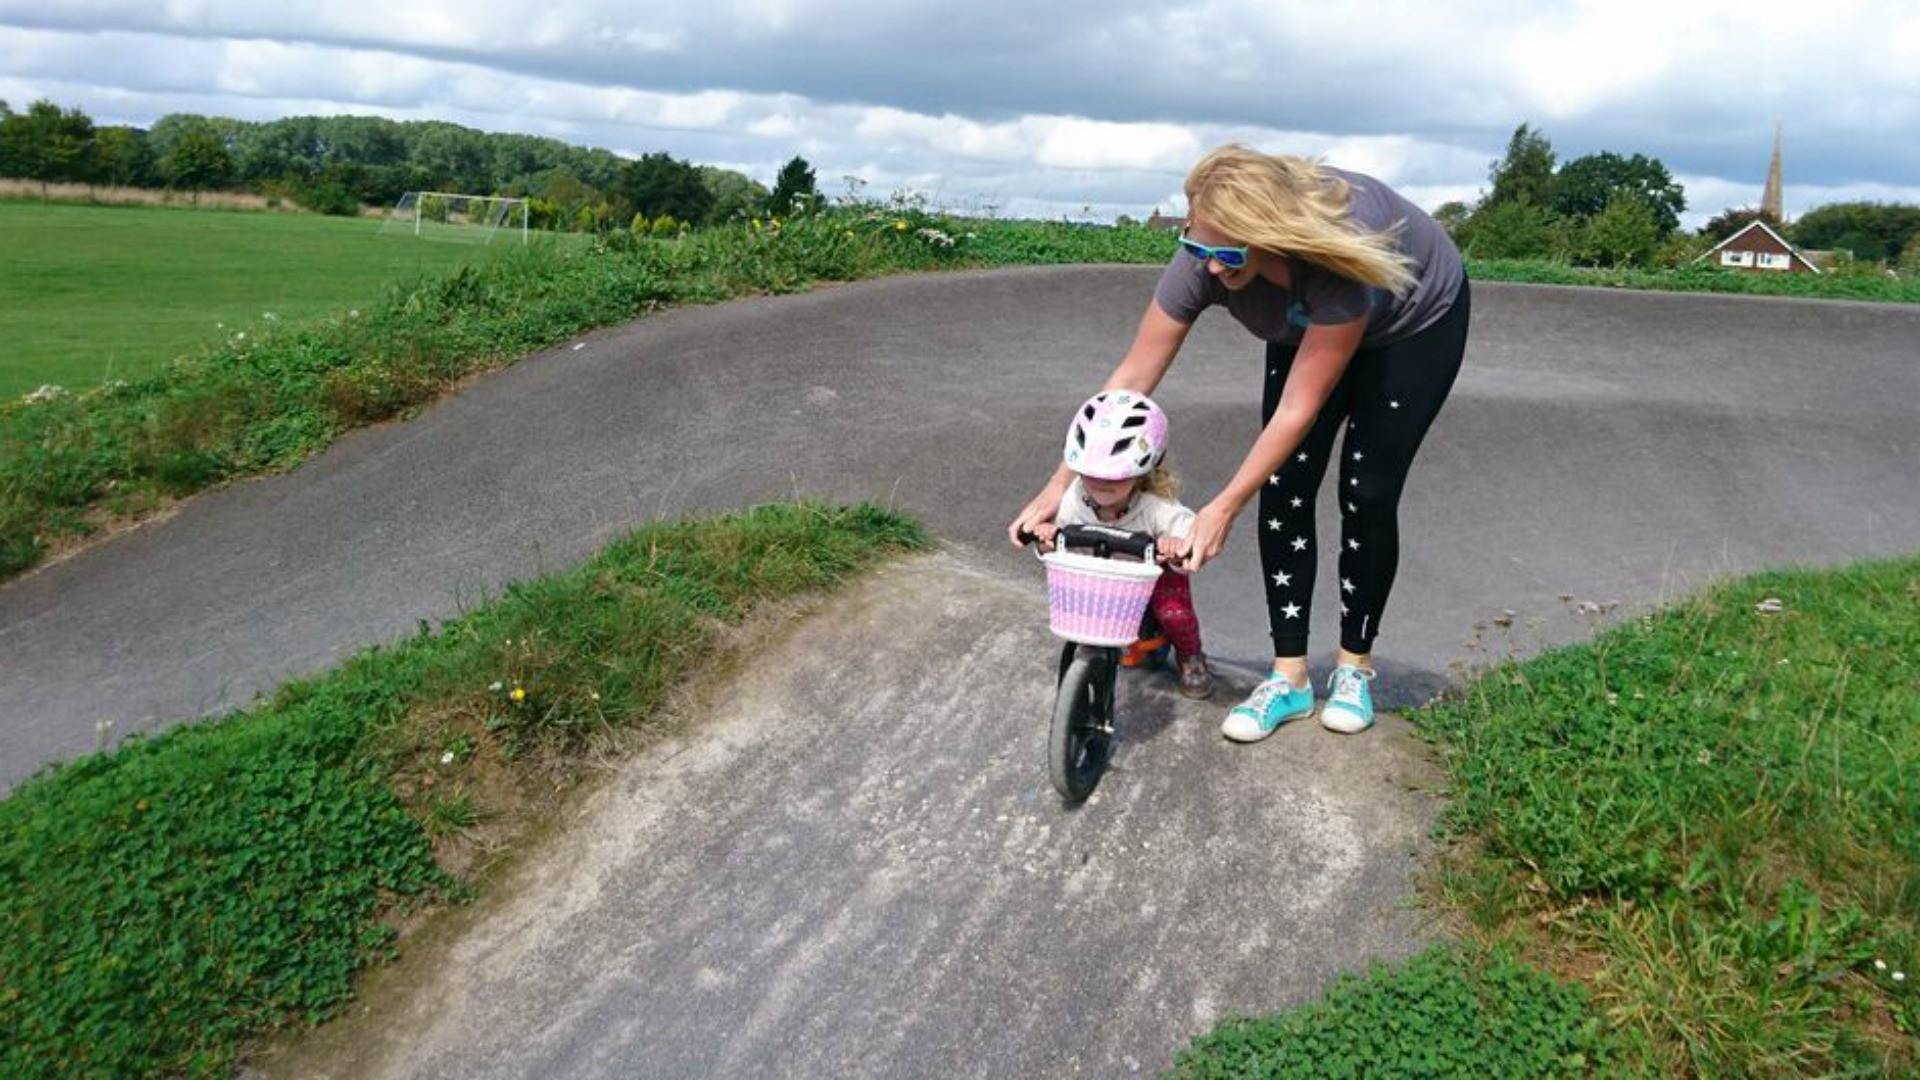 Jennifer Purcell and her daughter on one of the pump tracks in a neighbouring village